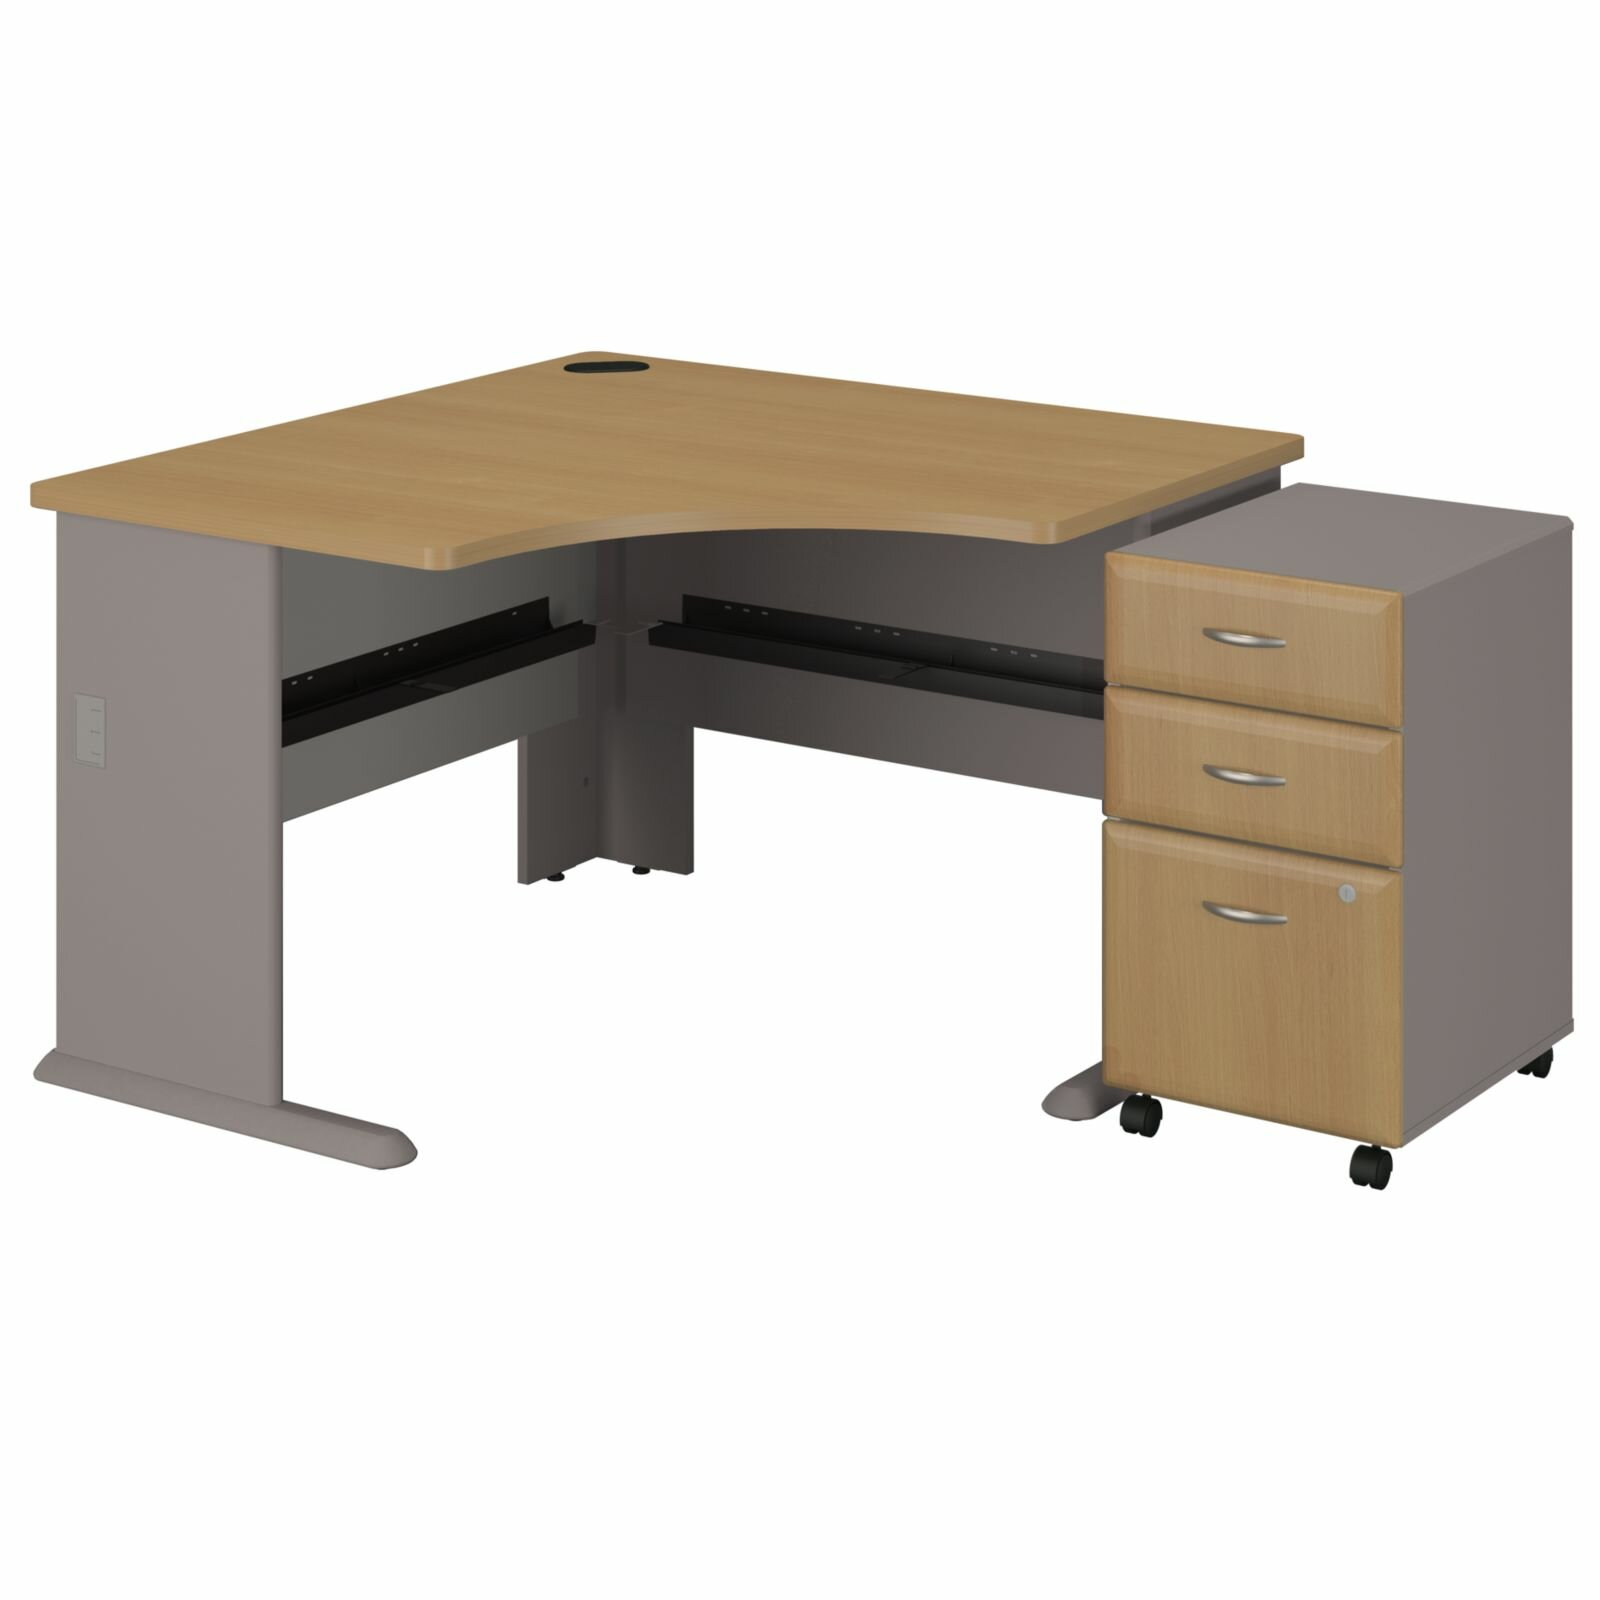 Bush Business Furniture Series A Executive Desk With 3. Table And Floor Lamp Set. Modern Wood Desks. Bed Bath And Beyond Desk. Bar Stool Table Set. Window Tables. Colorful Desk Chair. Modular Drawer. One Drawer Desk